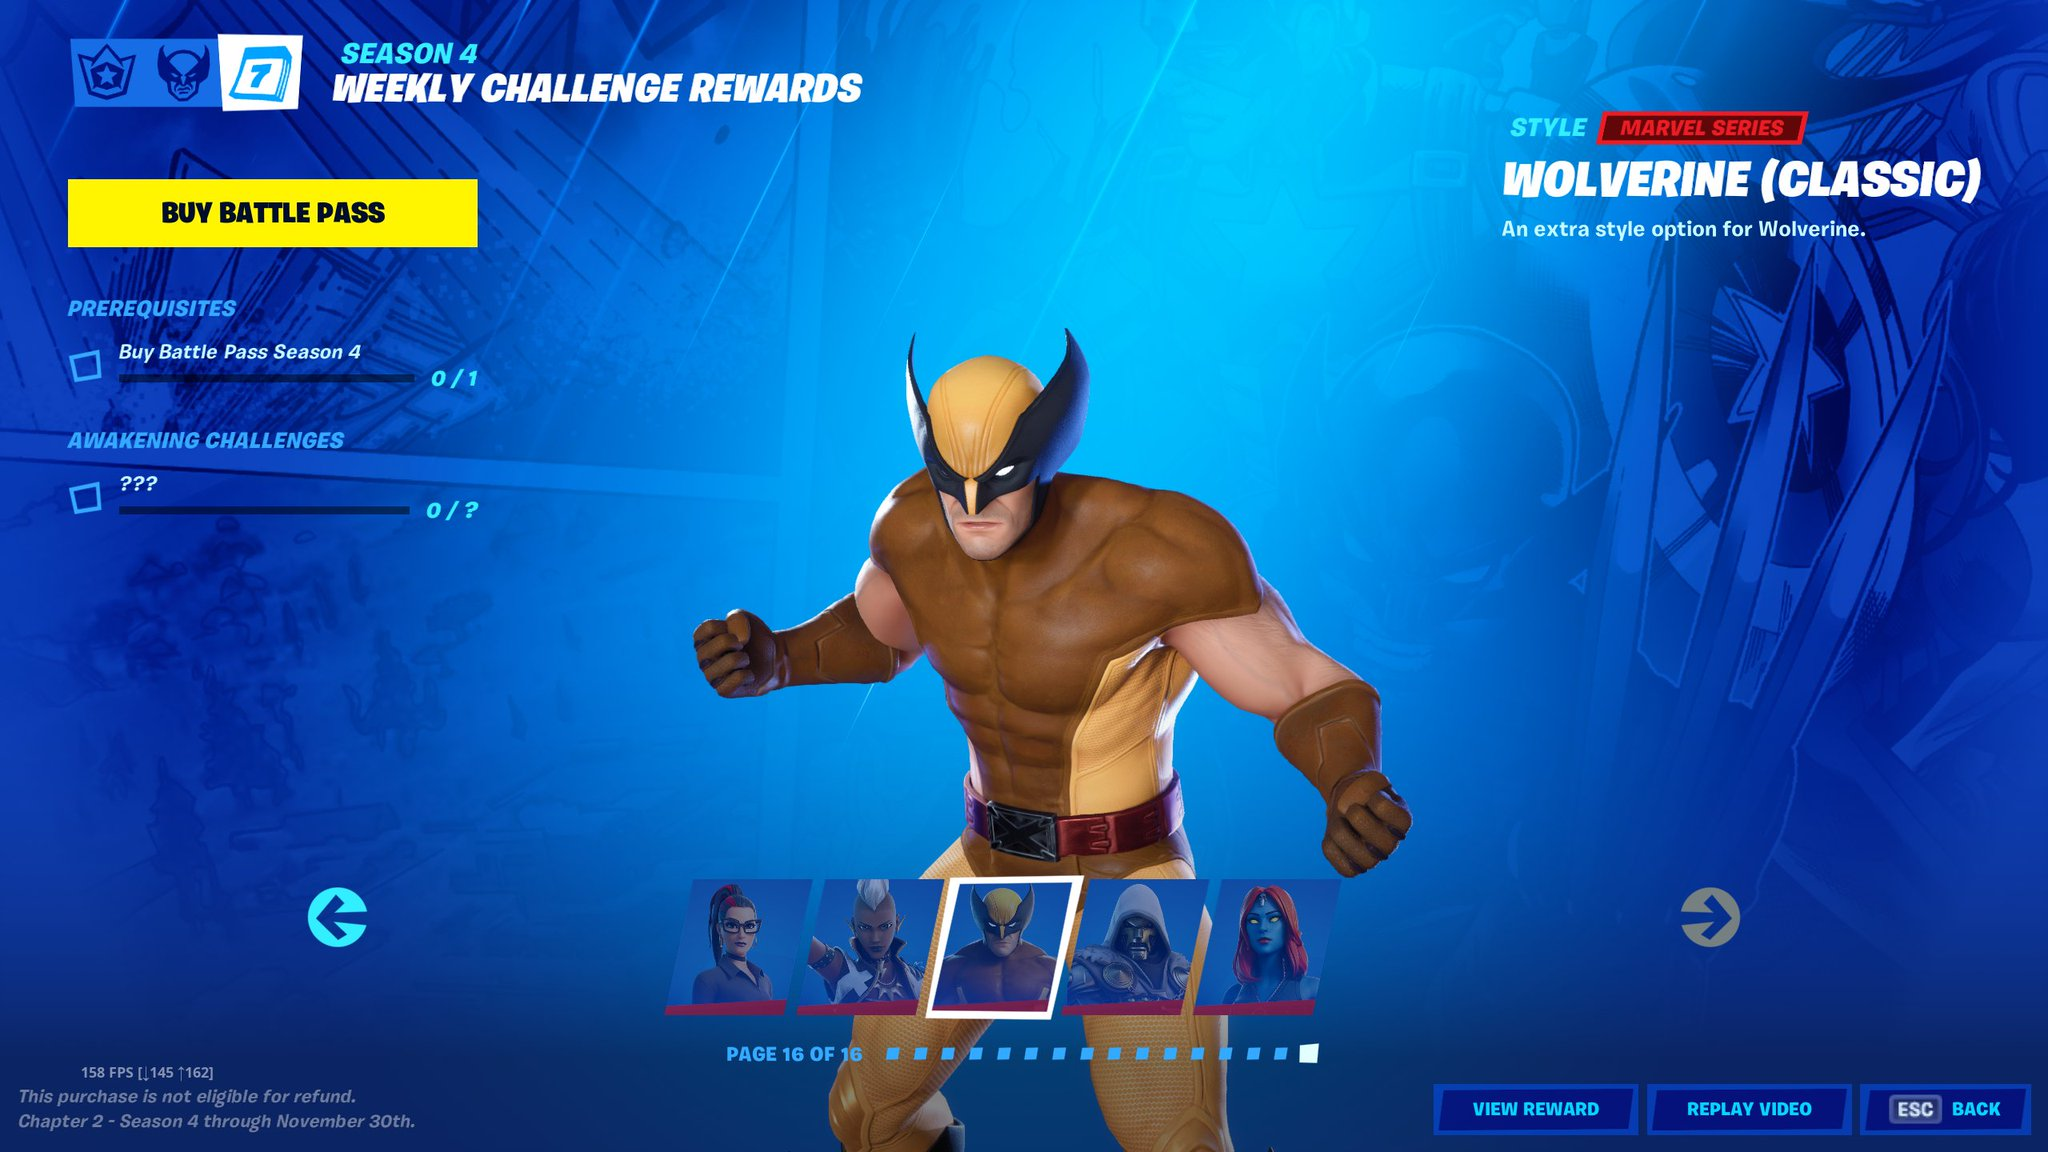 Shiinabr Fortnite Leaks On Twitter Thor Is Tier 1 And This Is The Last Battle Pass Stage Credit Me M1fnbr